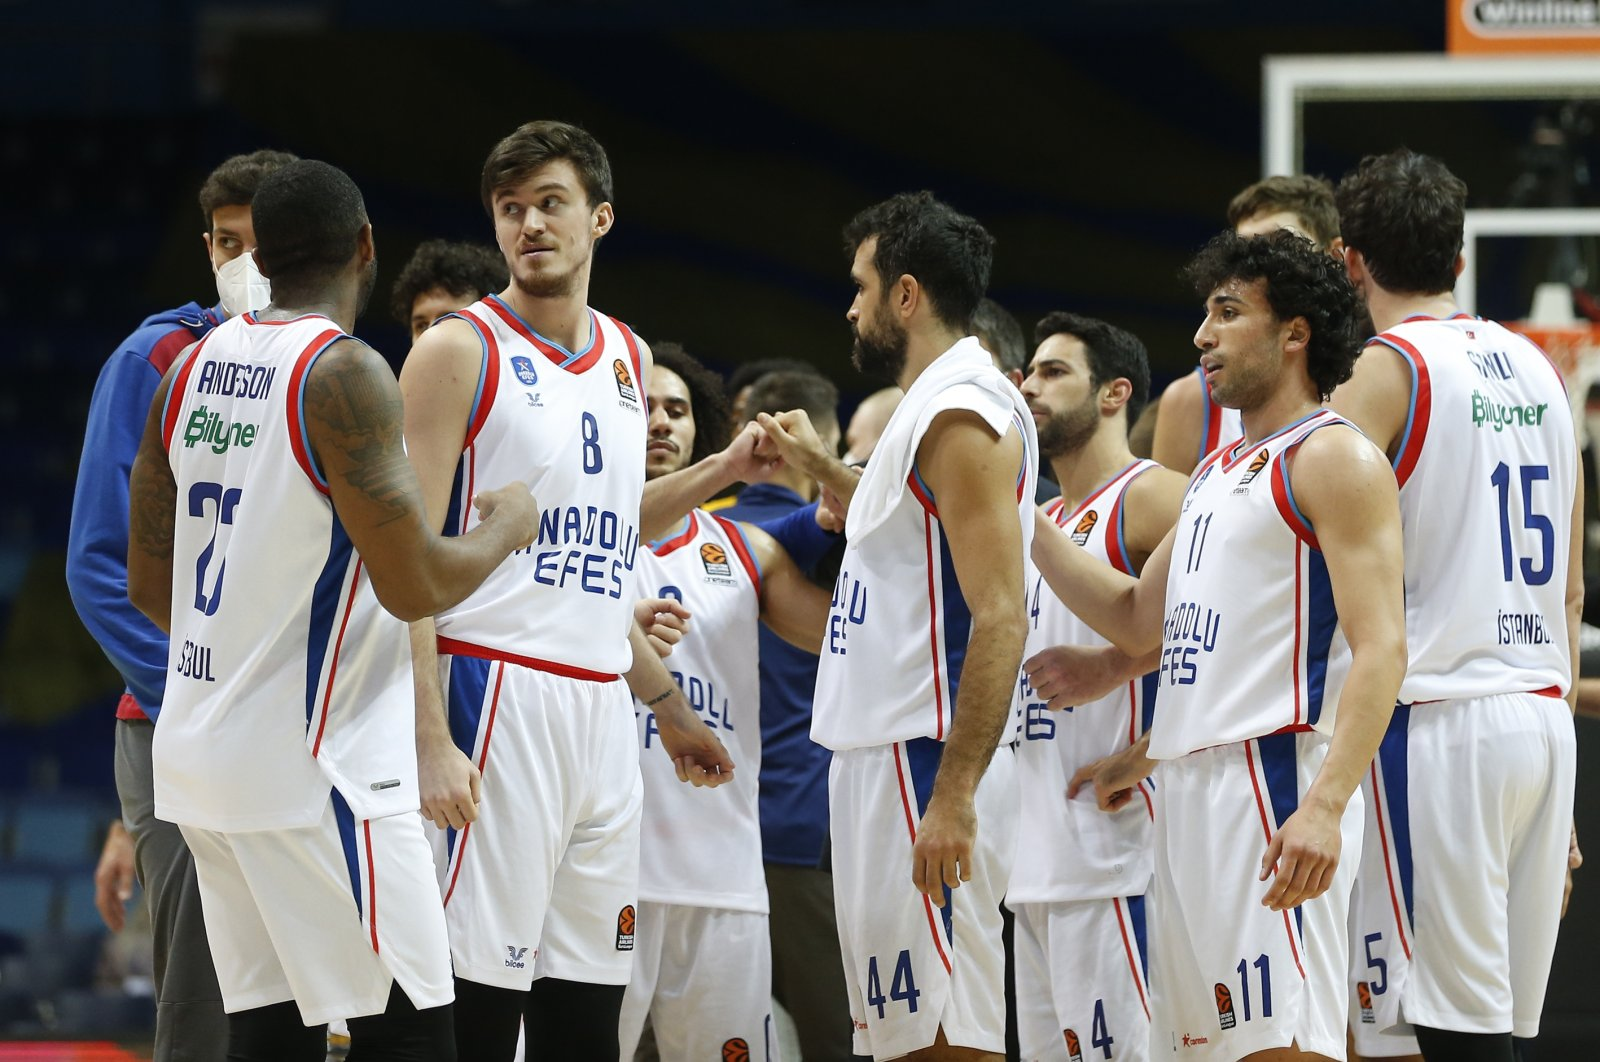 Anadolu Efes players celebrate winning the Turkish Airlines EuroLeague match against Khimki Moscow, in Moscow, Russia, Nov. 19, 2020. (AA Photo)